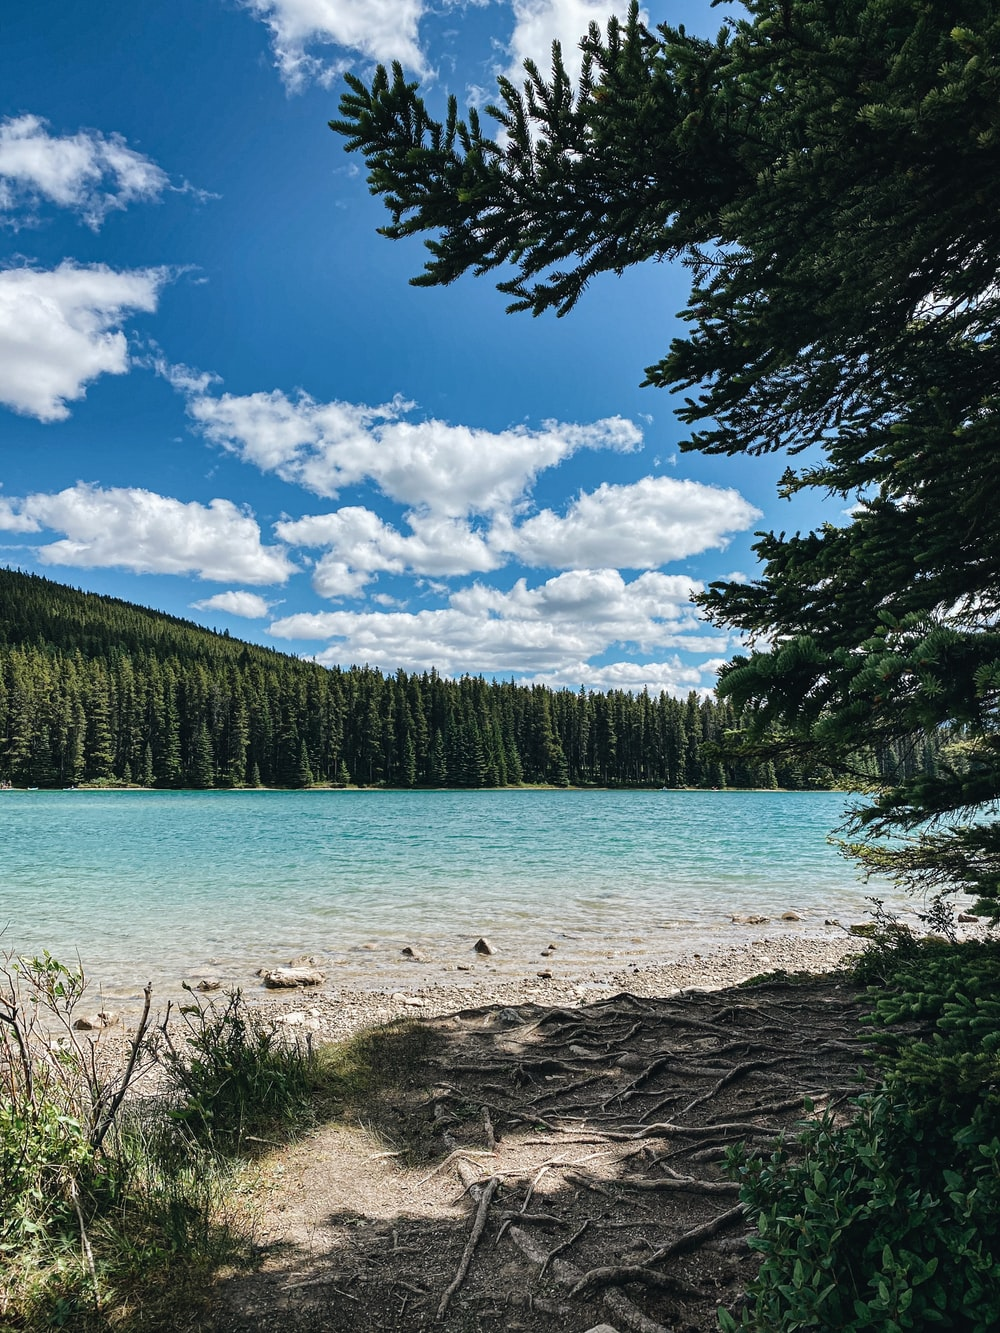 green pine trees near body of water under blue sky and white clouds during daytime